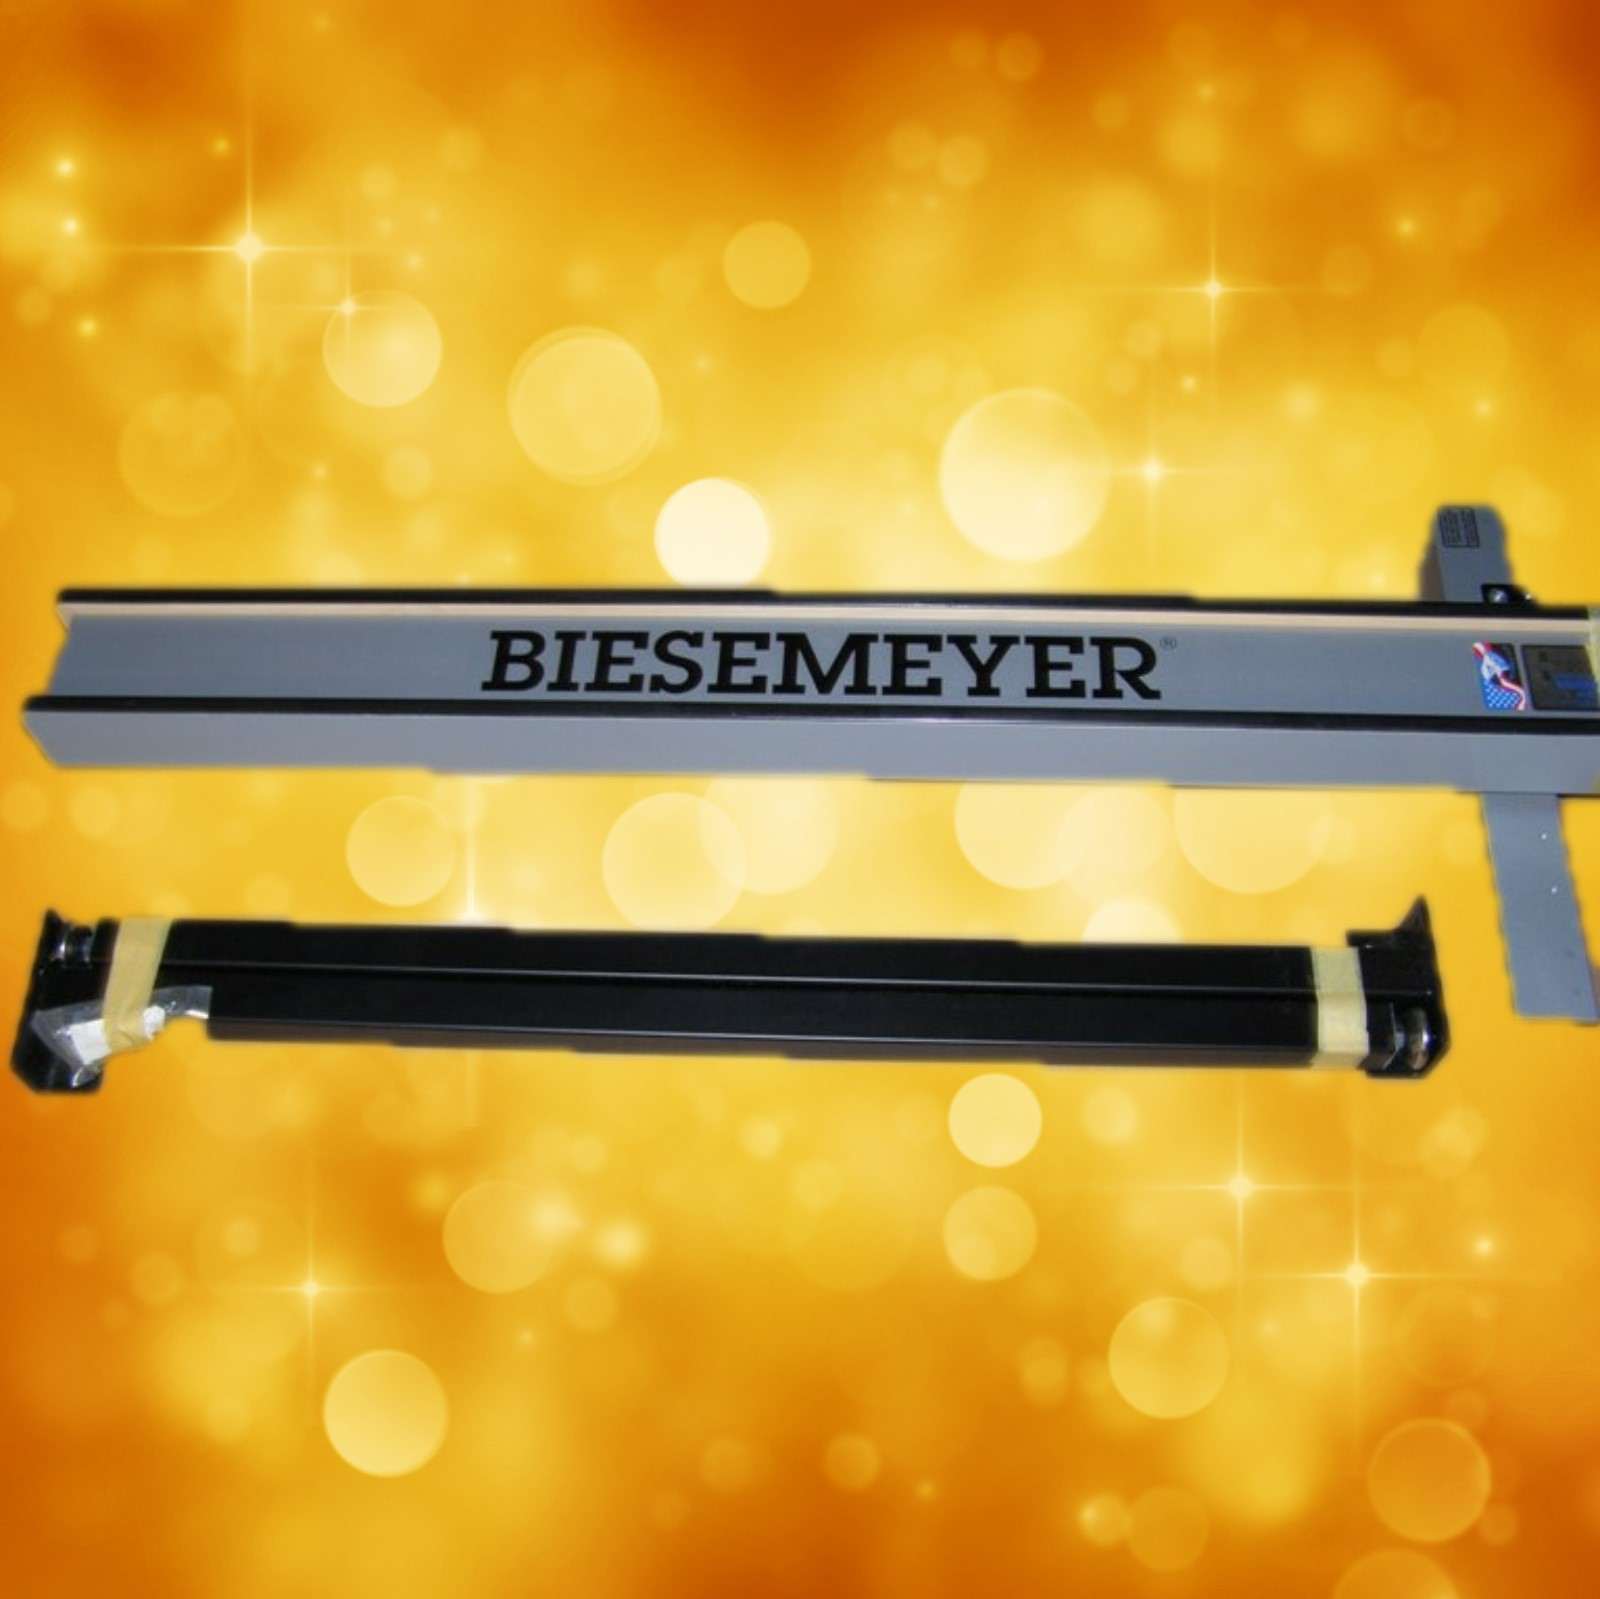 "Biesemeyer B78-972 42"" Platinum Commercial Table Saw Fence  w/one pair of legs, Black  Does not include Guideset or Hardware B78-972"